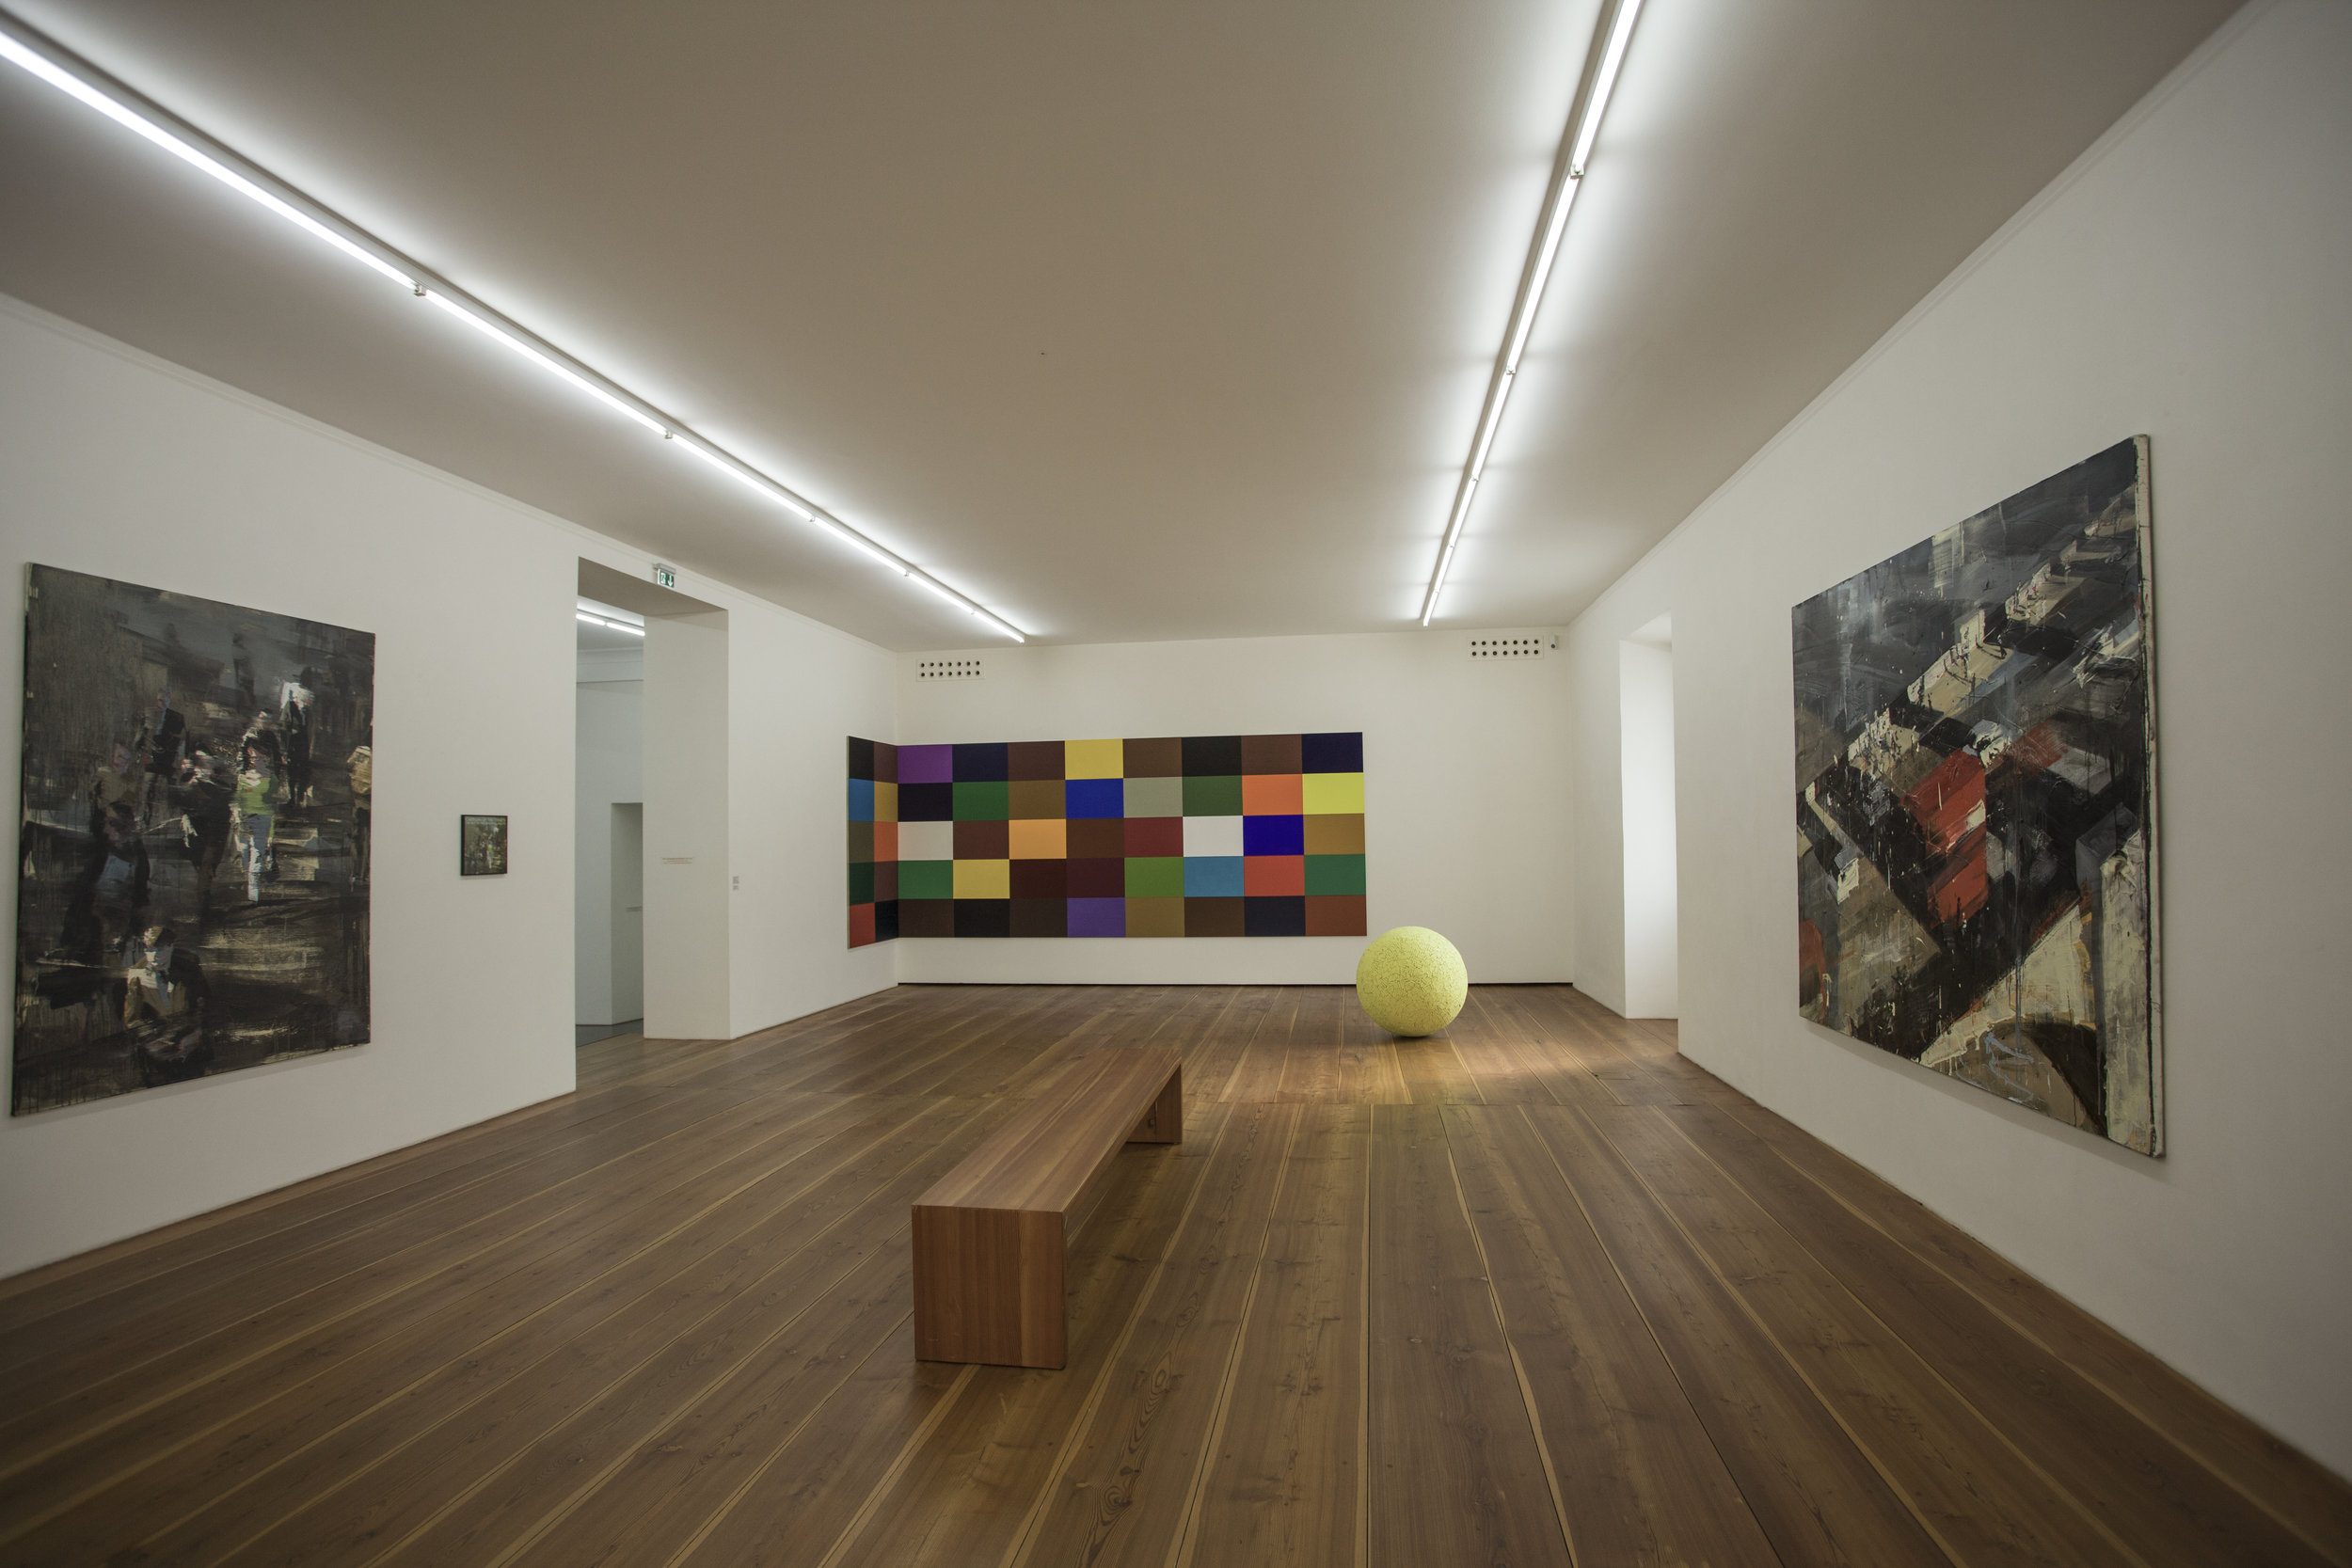 "(Left)     Matthew Radford , "" April City "" (1993-1994) -  (In the background)   Gerhard Langenfield , "" 50 Farbtafeln "" (2005) -  (On the floor)   Rainer Seliger , "" Pallone giallo "" (2010) -  (Right)   Matthew Radford , "" Red Bus II/London II "" (1995)"